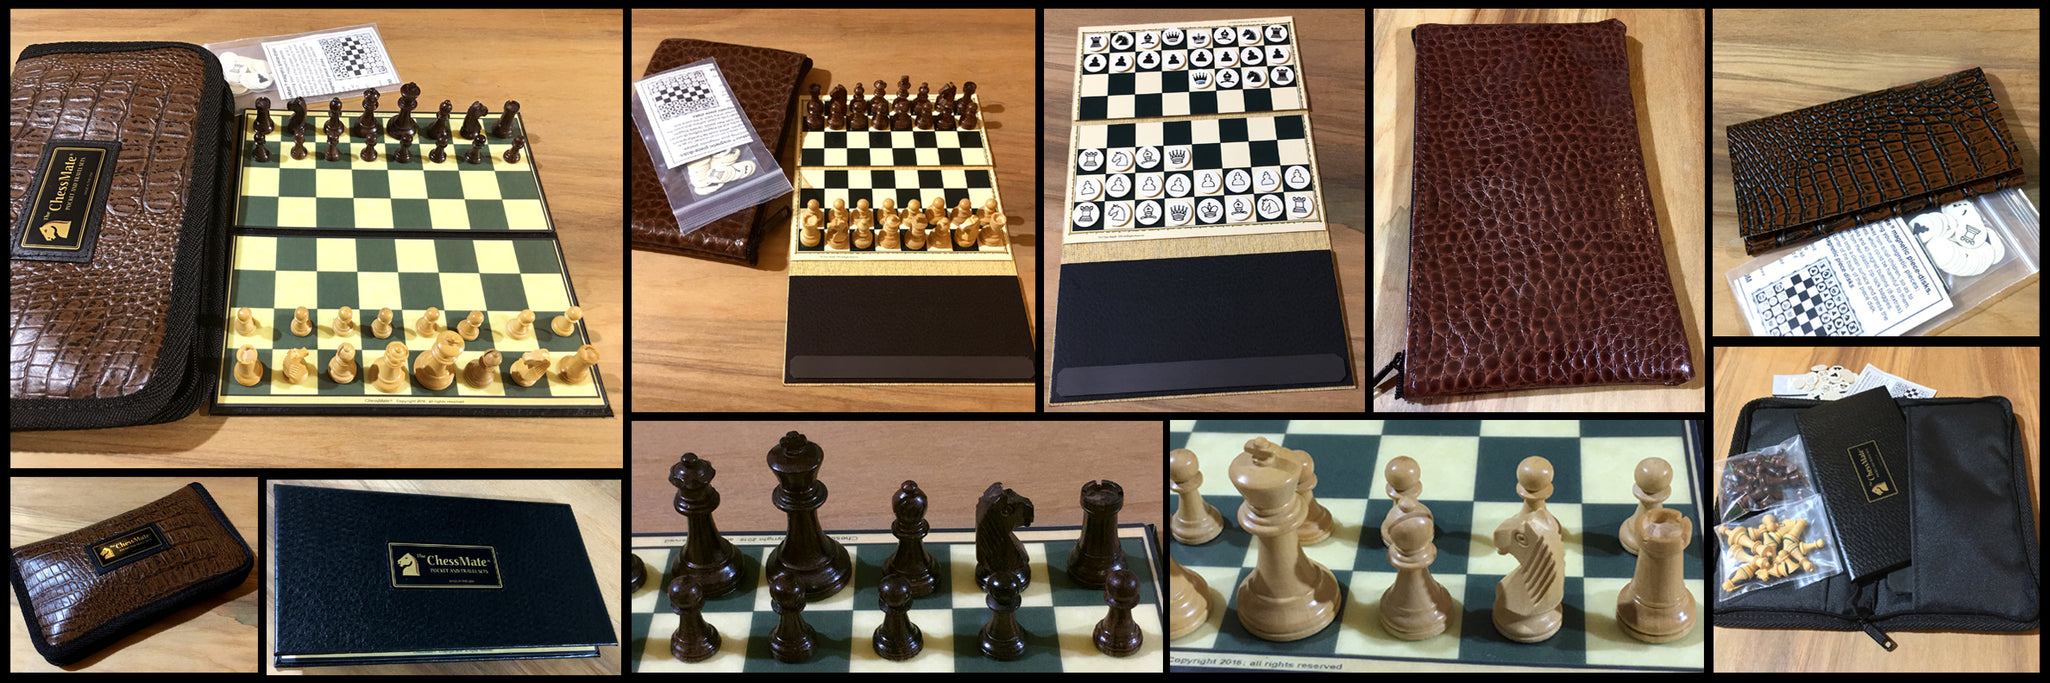 The ChessMate®